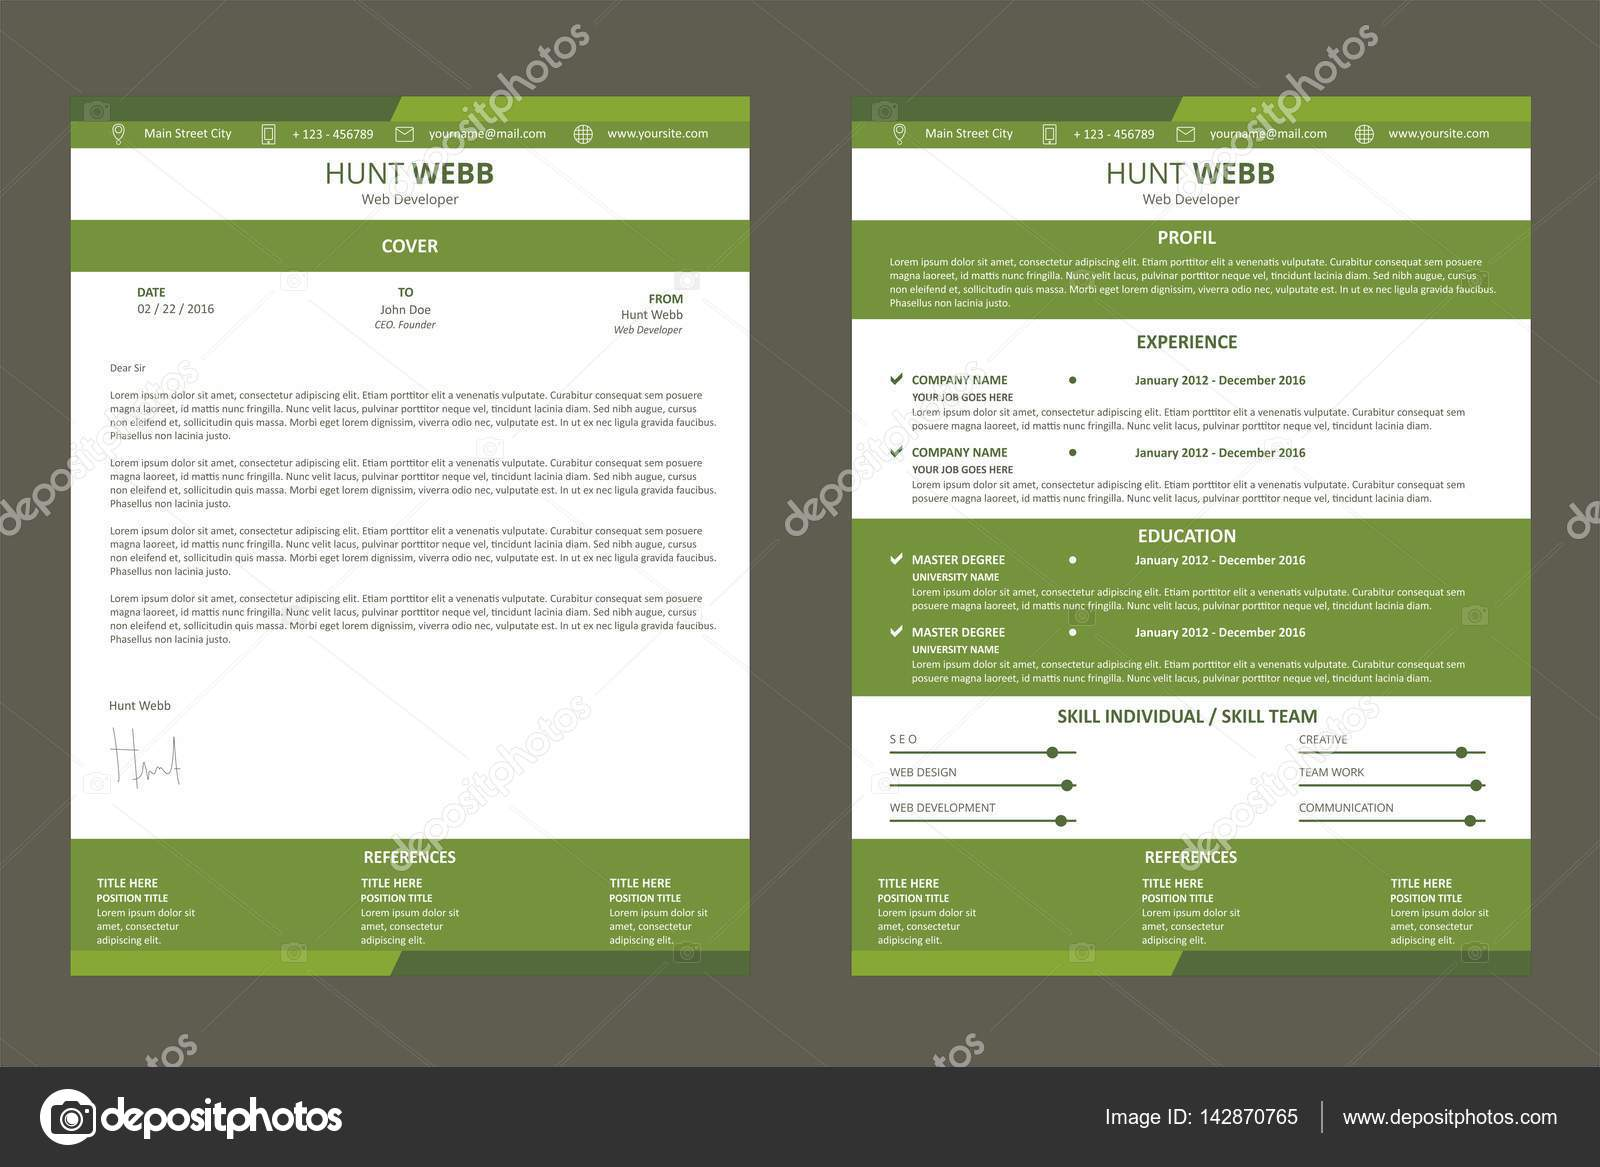 Cv Resume Curriculum Vitae Web Page Design Color Green With Cover